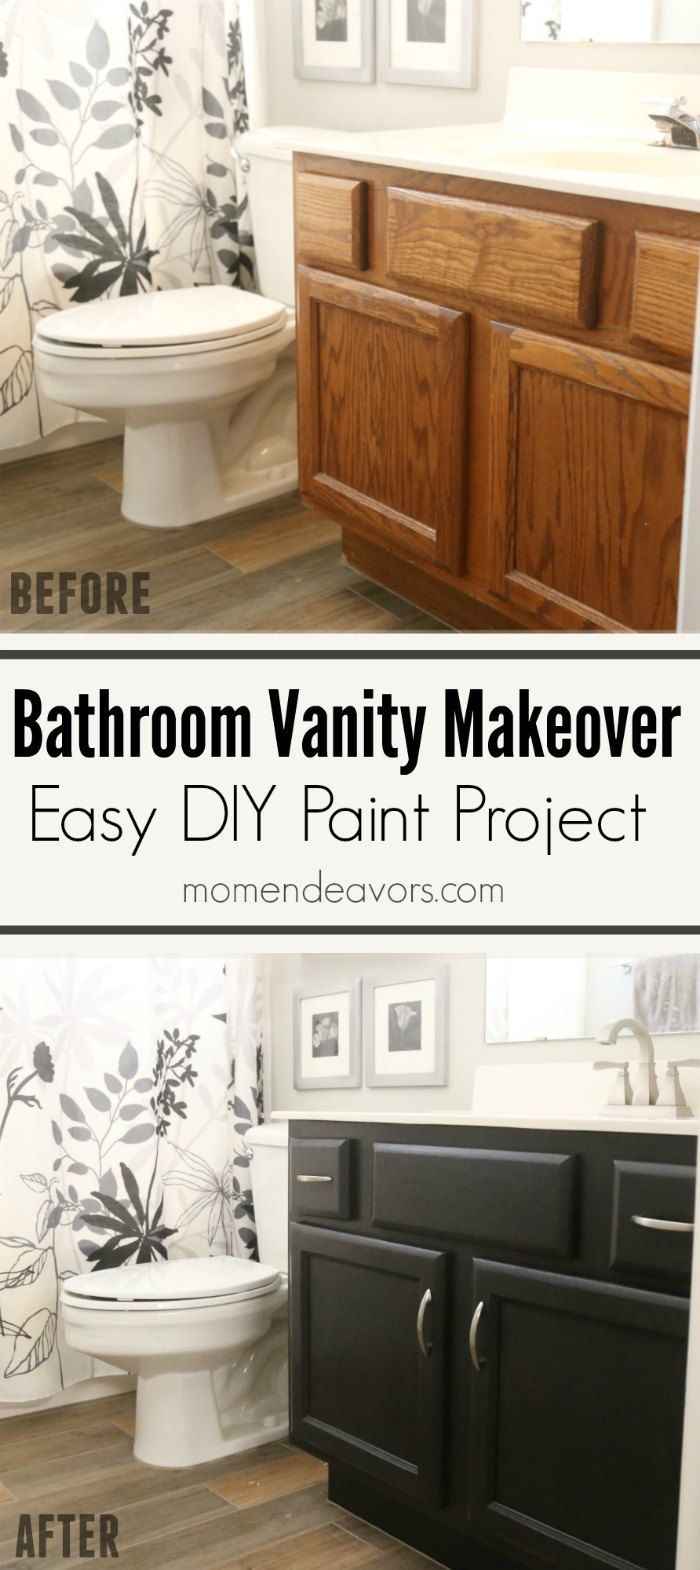 bathroom vanity makeover easy diy home paint project paint rh pinterest com refacing bathroom cabinets diy bathroom cabinets diy